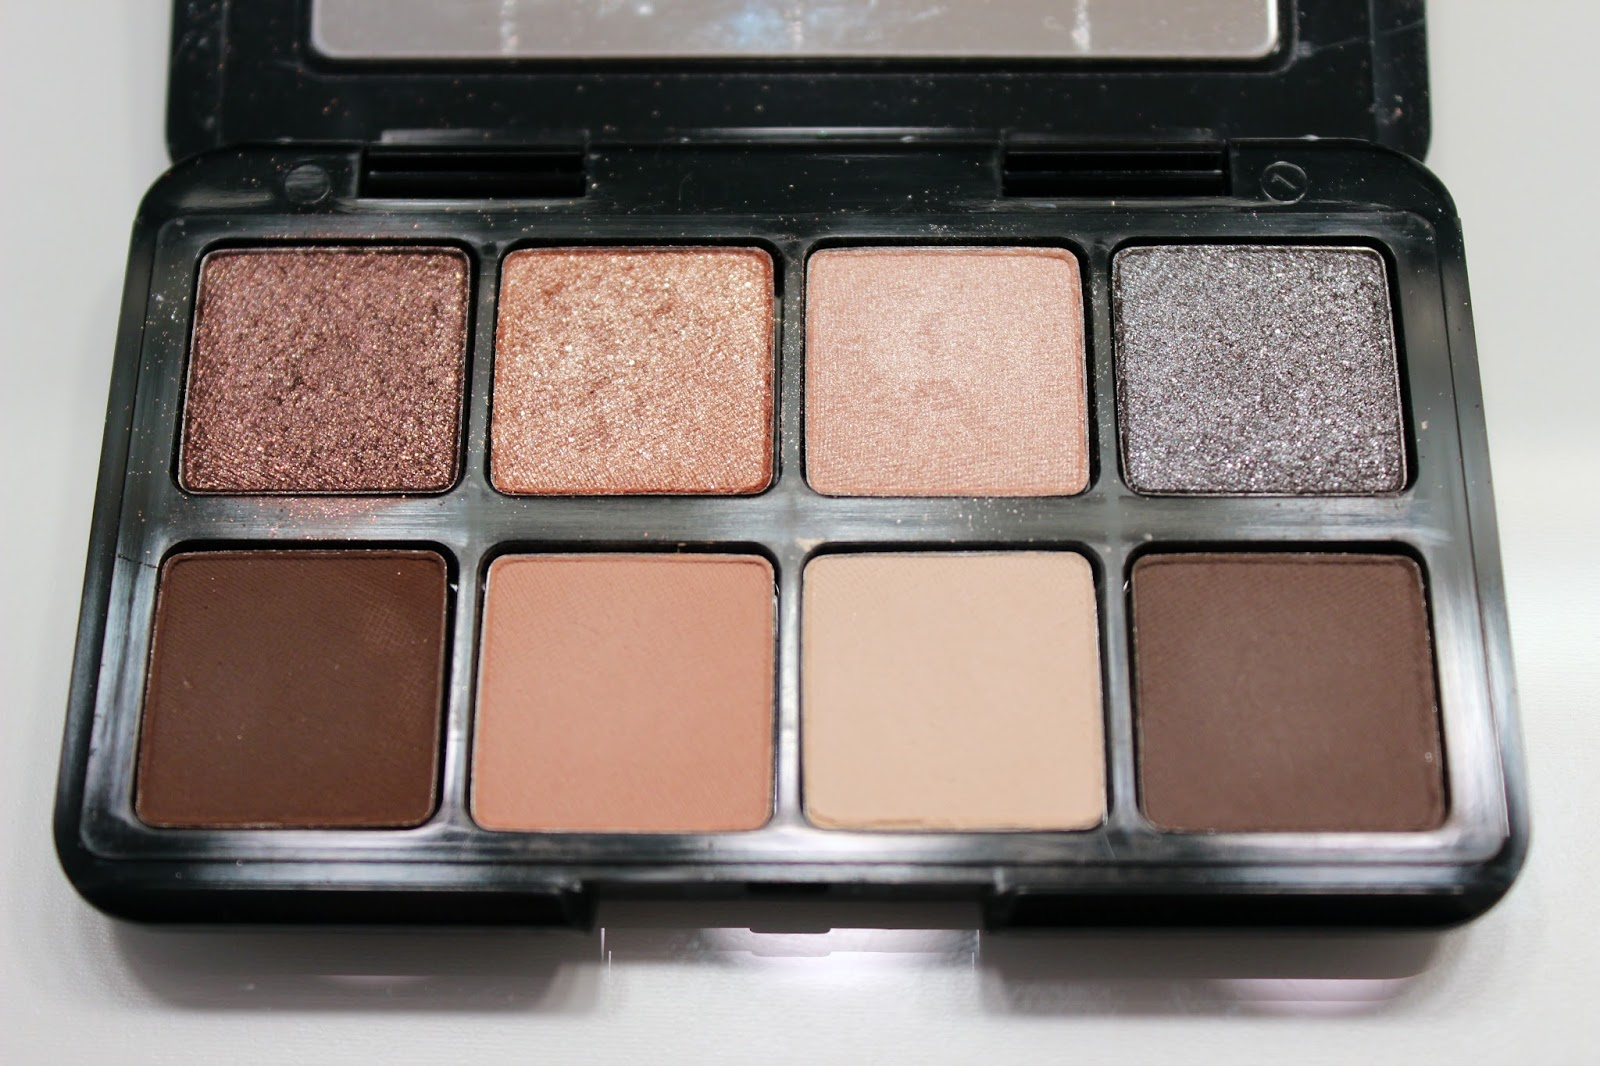 Luhivys Favorite Things Smashbox Full Exposure Travel Palette Review